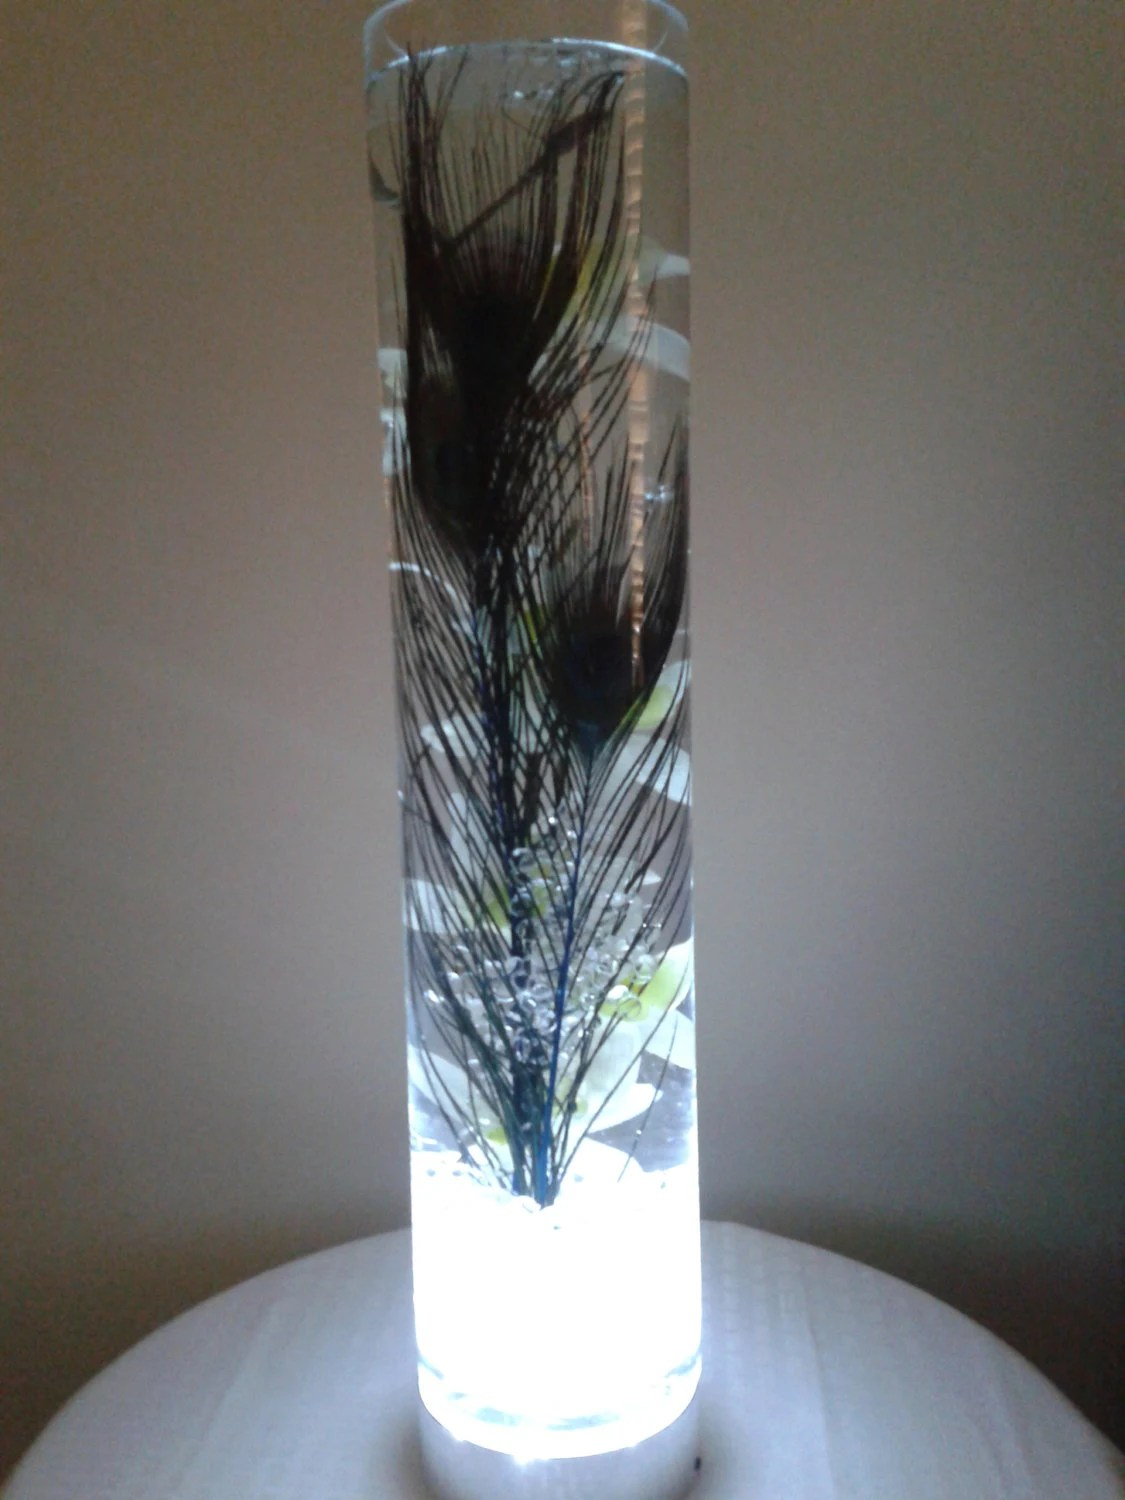 Peacock feathers in a glowing vase filled with water and white